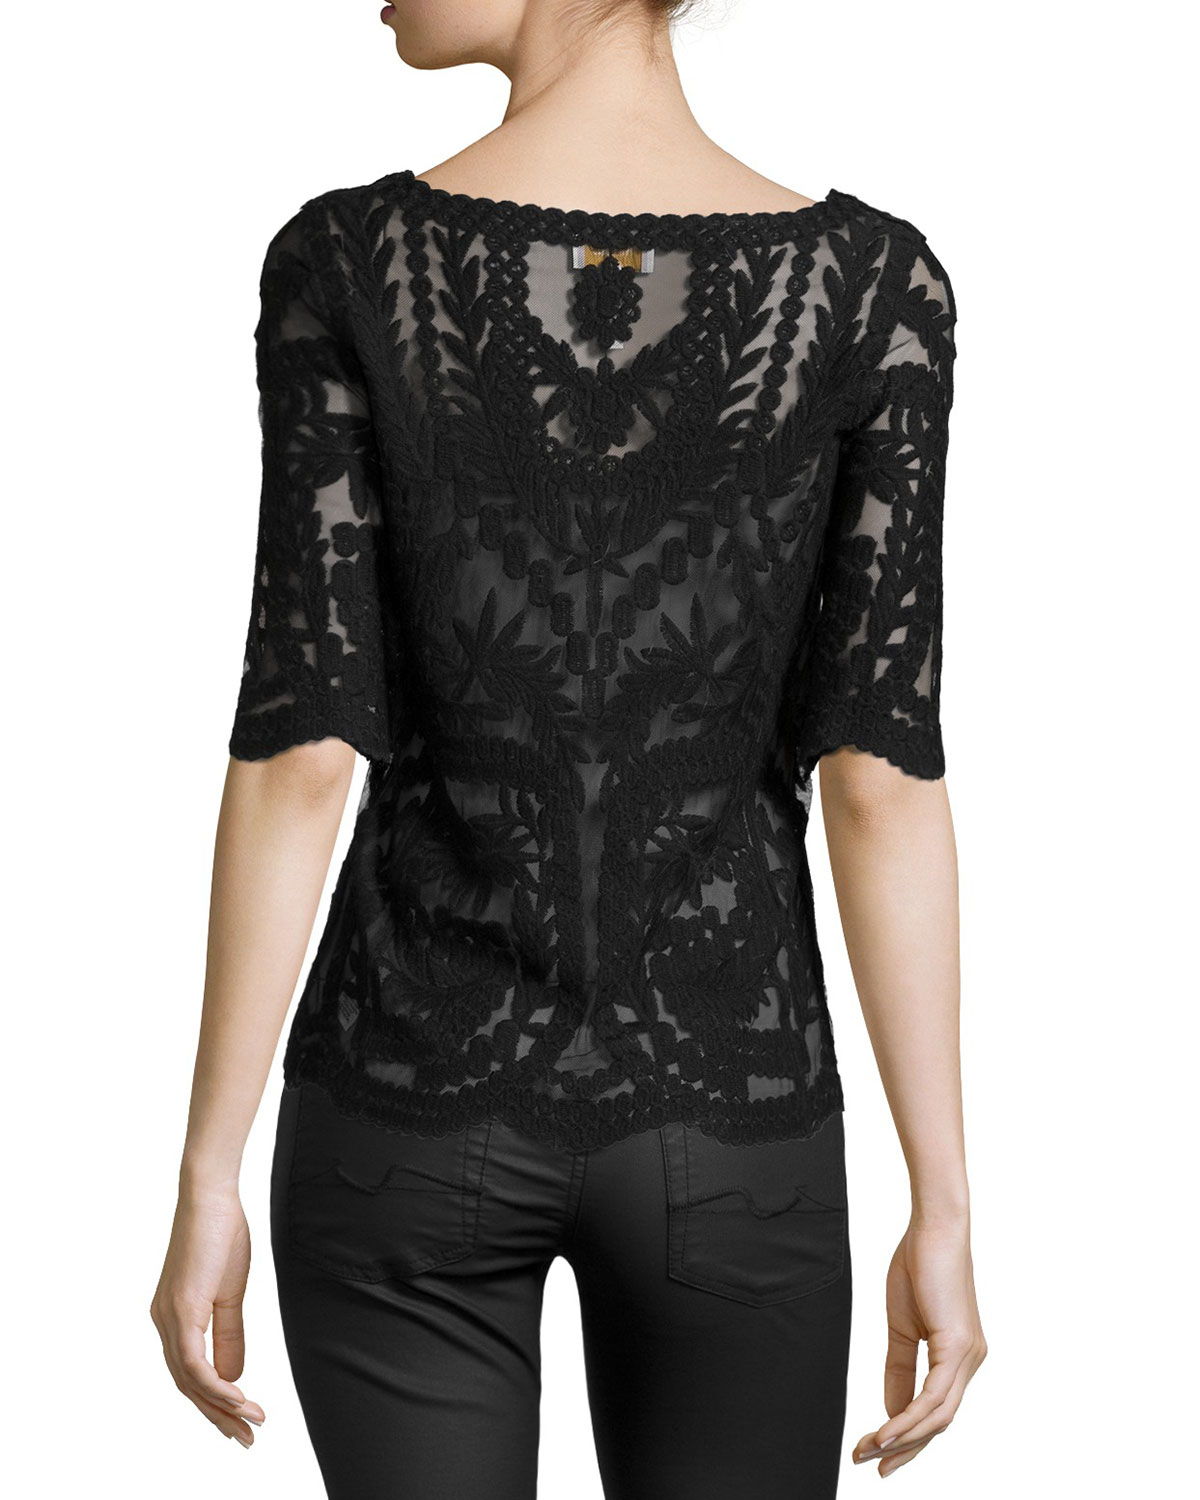 Laundry By Shelli Segal Mesh Amp Lace Boat Neck Top In Black